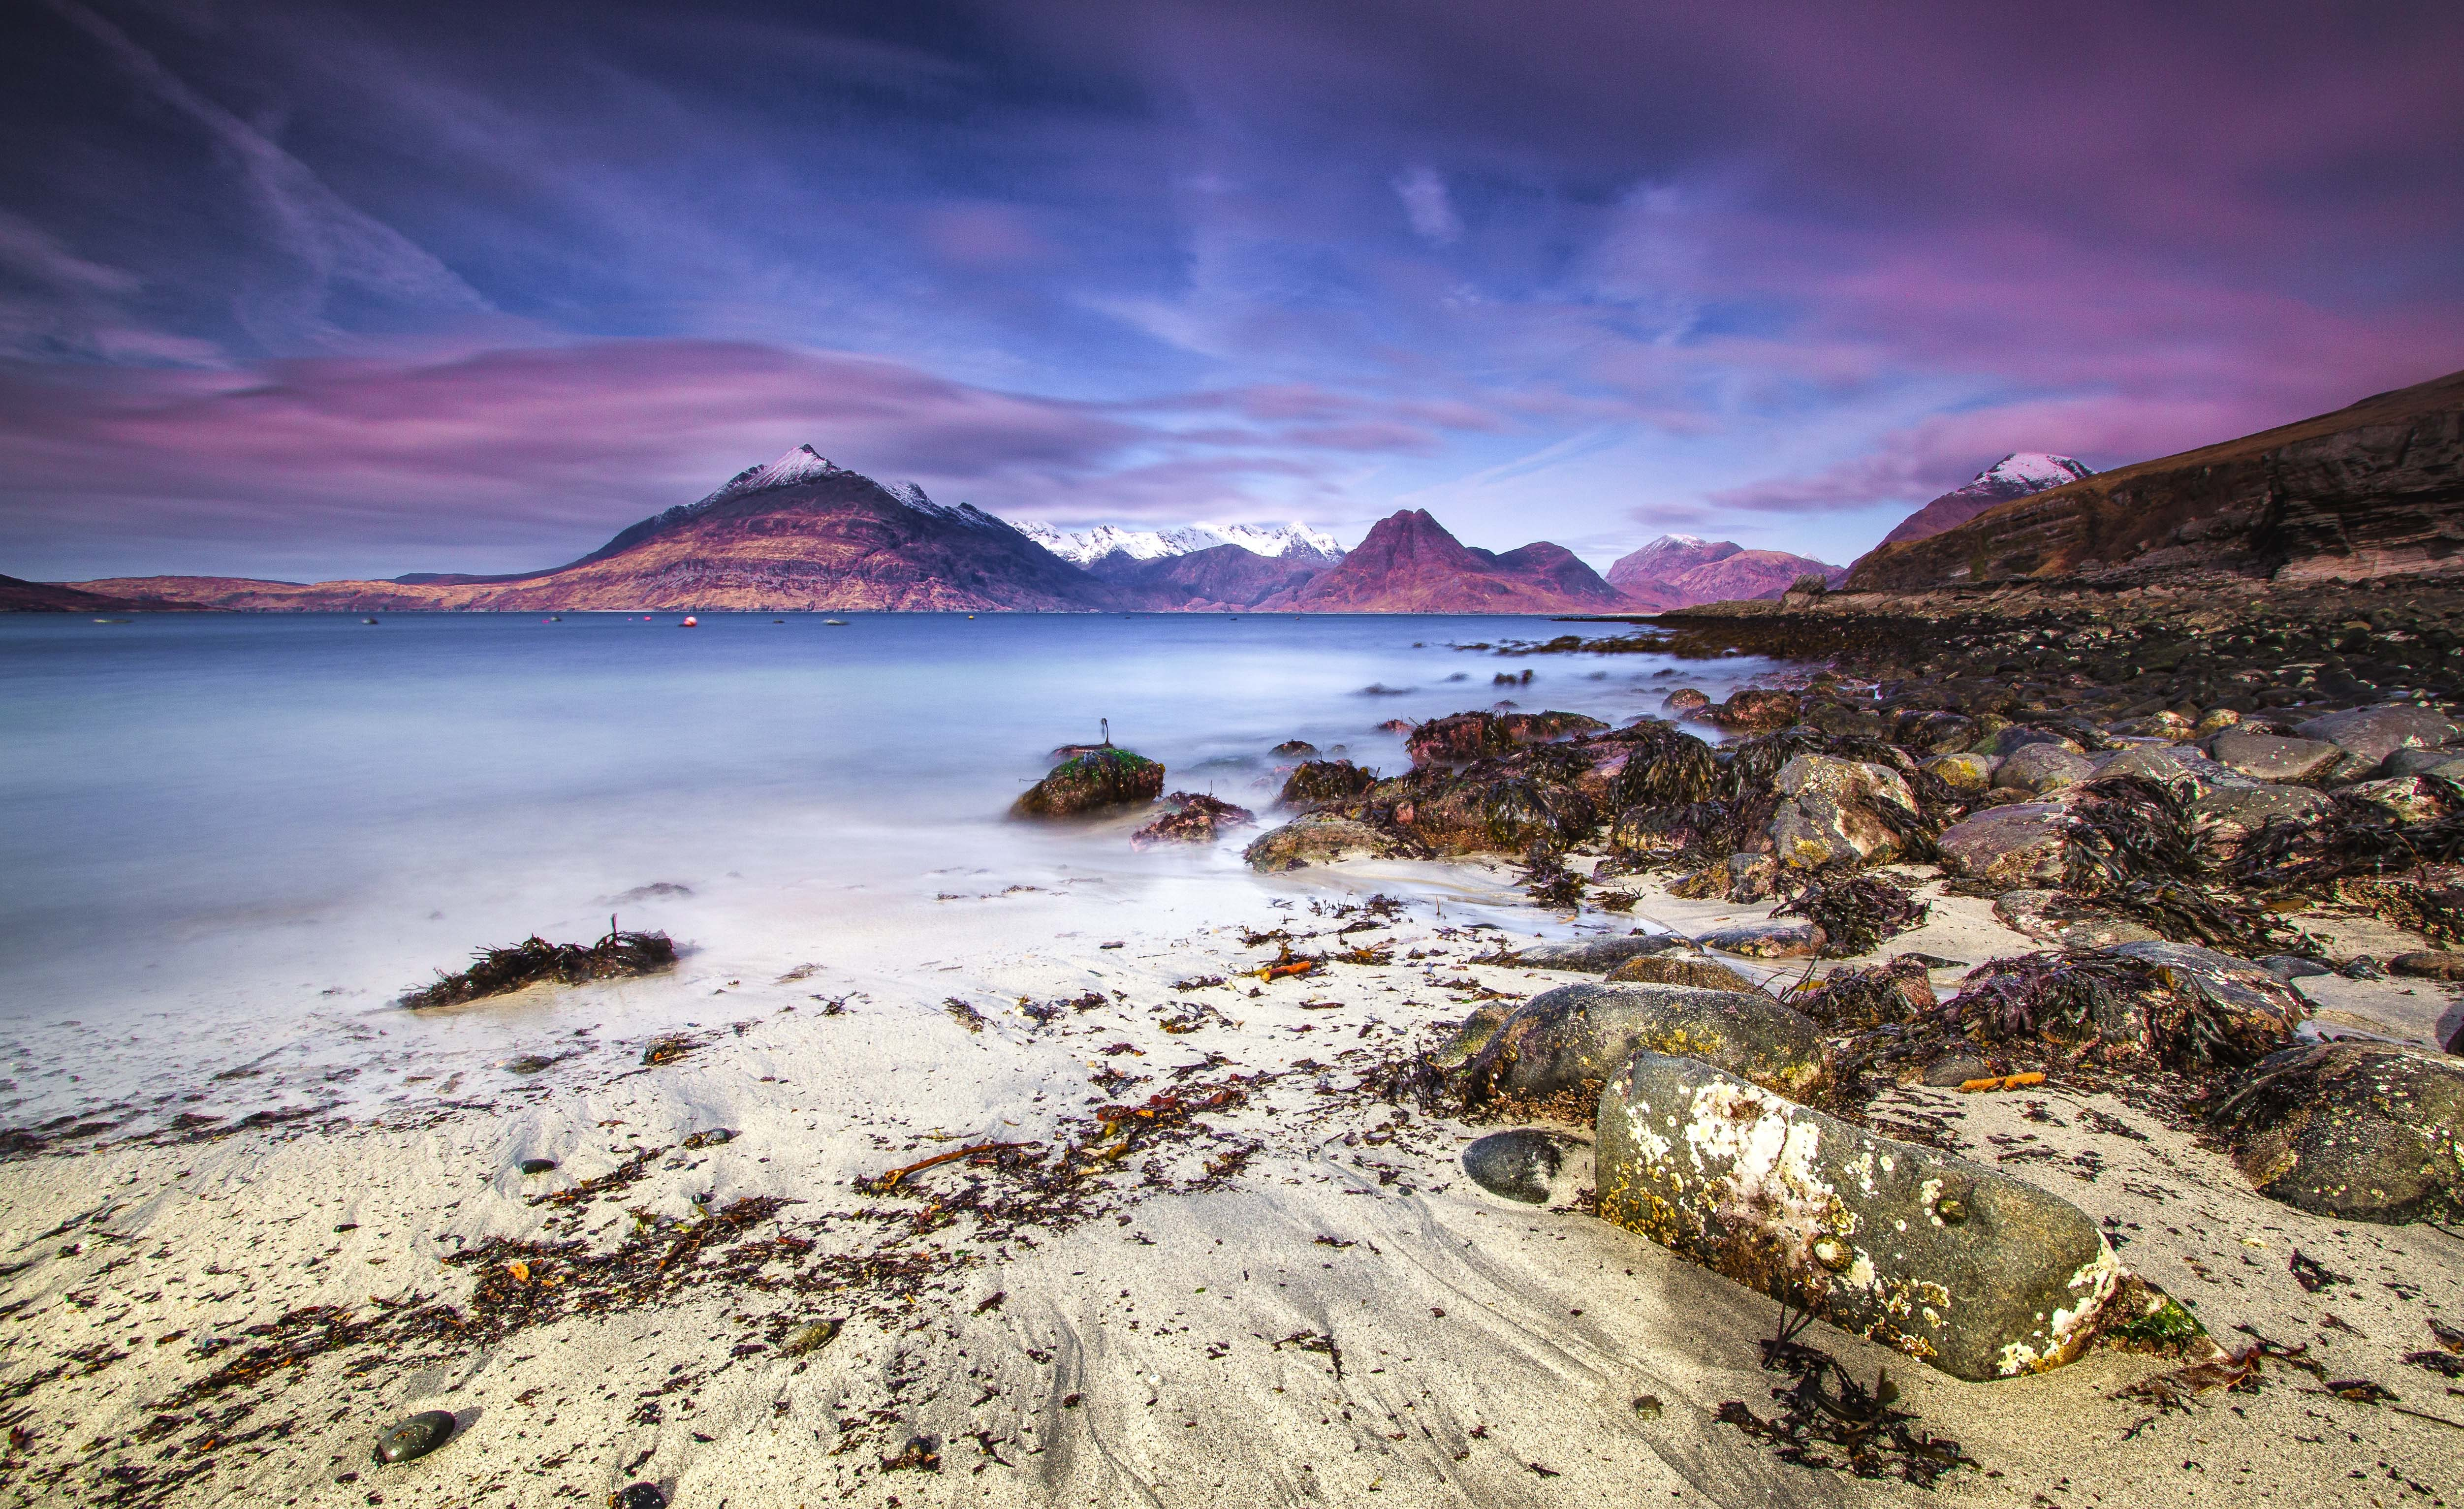 View of the mountain range from rocky sand beach in Elgol Village